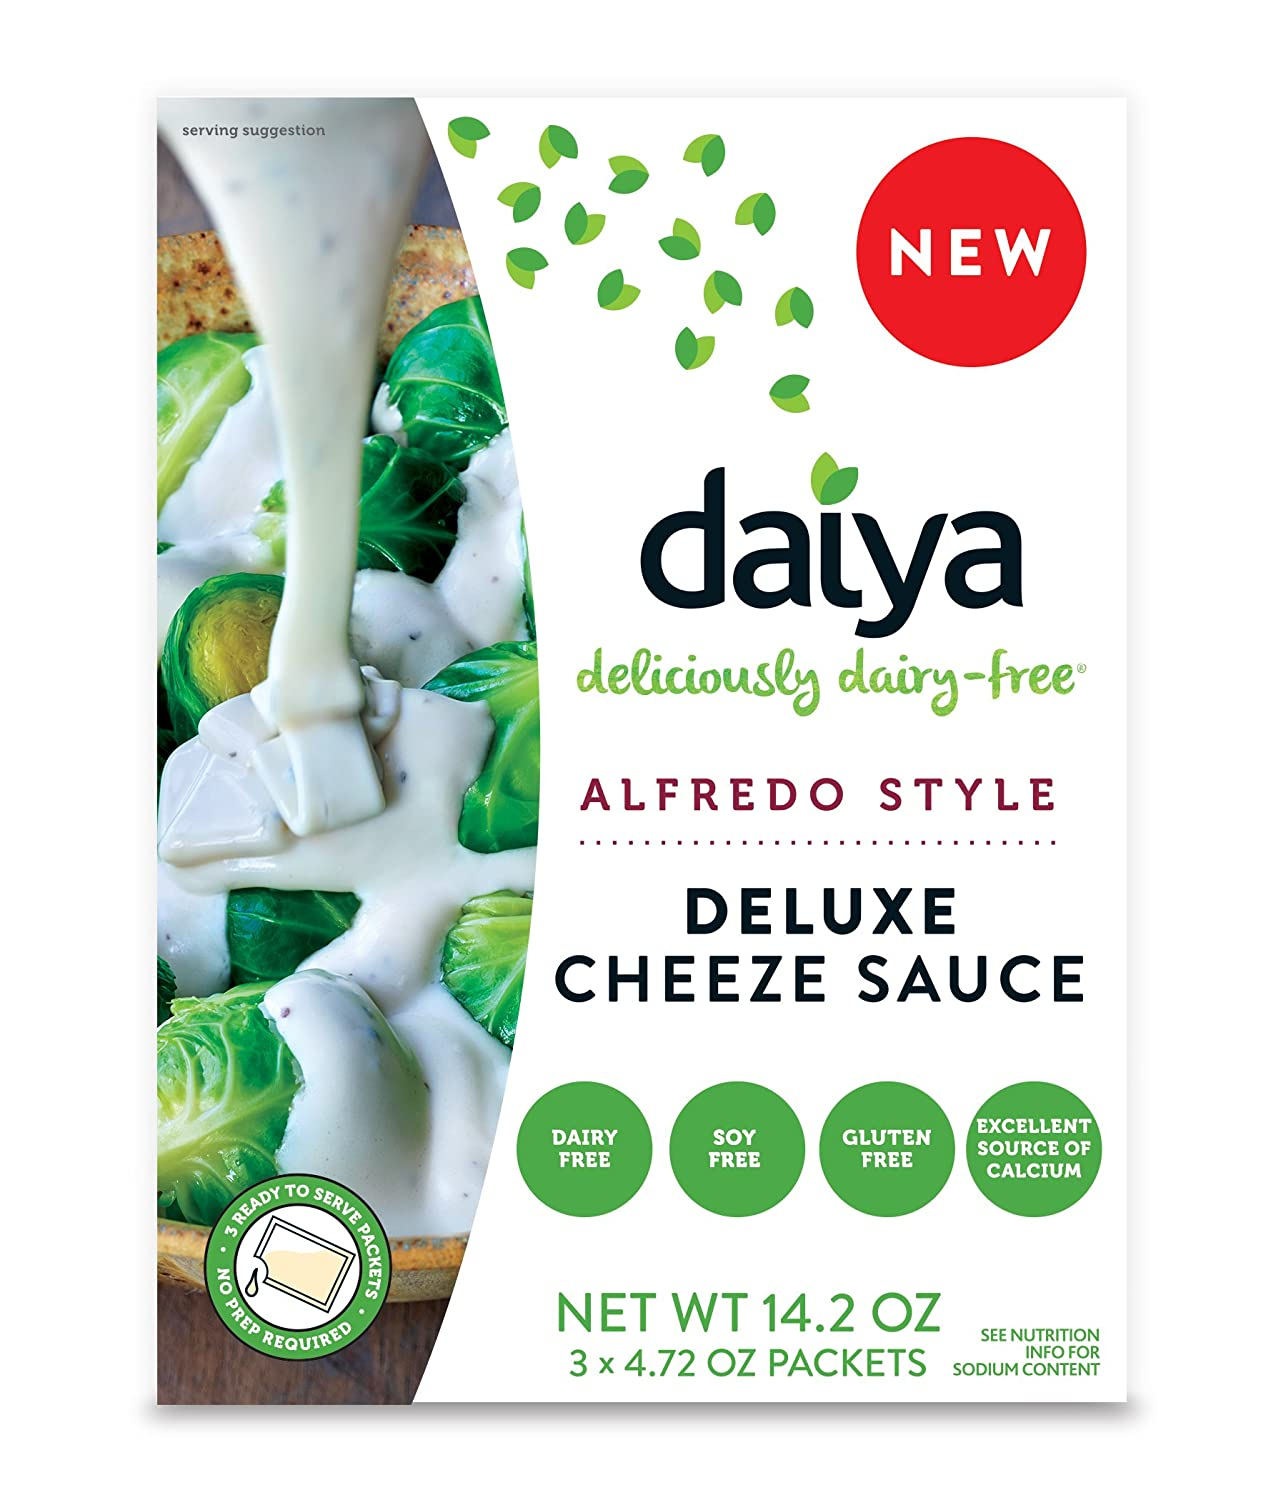 Daiya Alfredo Style Cheeze Sauce :: Creamy Veggie, Fettuccine & Spaghetti Sauce :: Vegan, Dairy Free, Gluten Free, Soy Free, Rich Cheesy Flavor :: Box Contains 3 Packets (2 Servings Each) (Pack of 1)